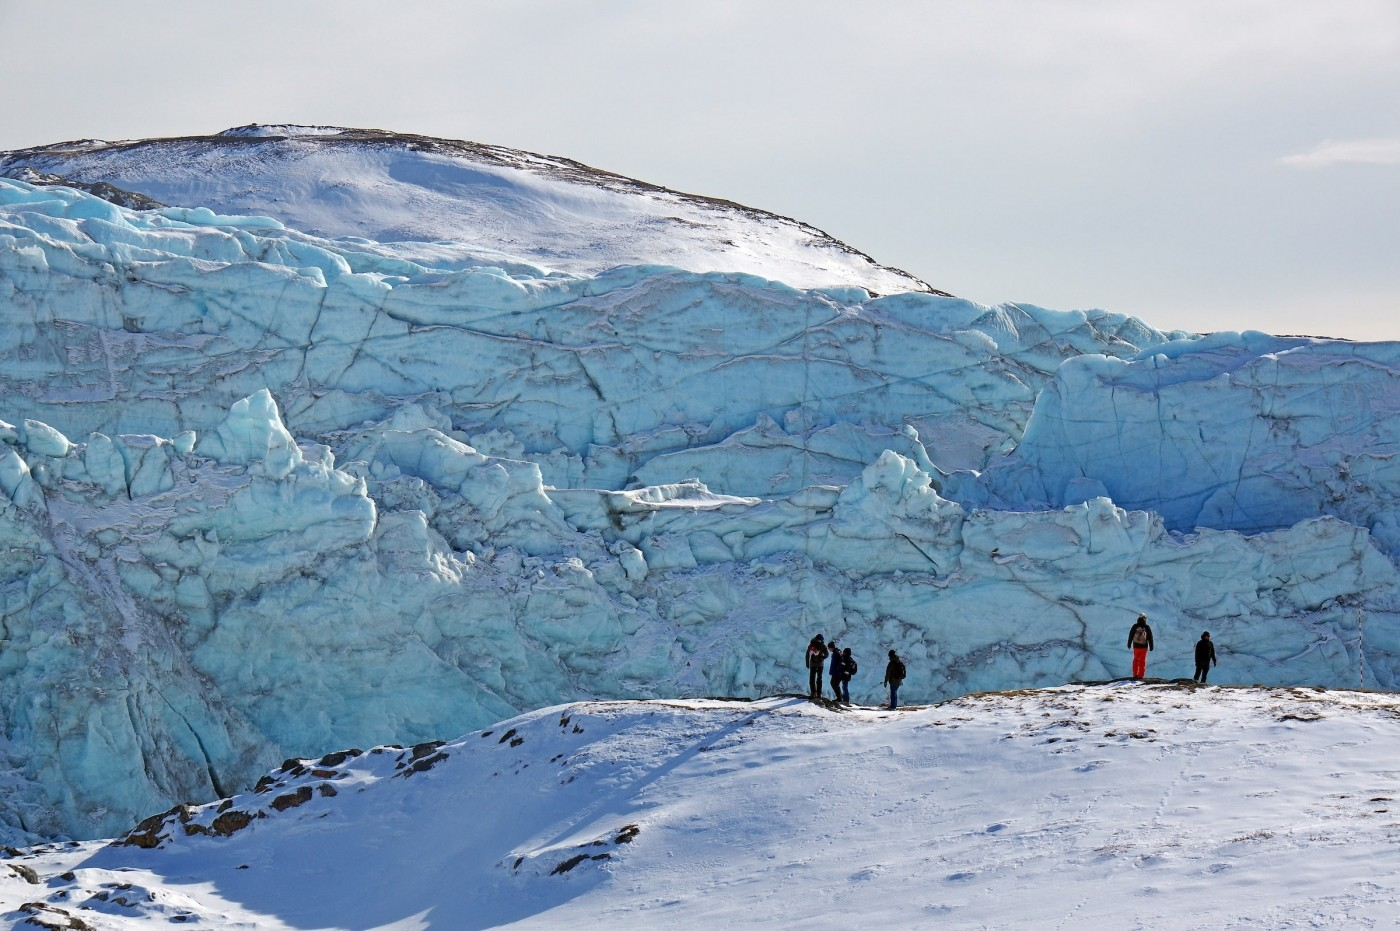 Tourists admiring the front face of Russell Glacier, close to Kangerlussuaq, on a clear winter's day. Photo by Reinhard Pantke - Visit Greenland